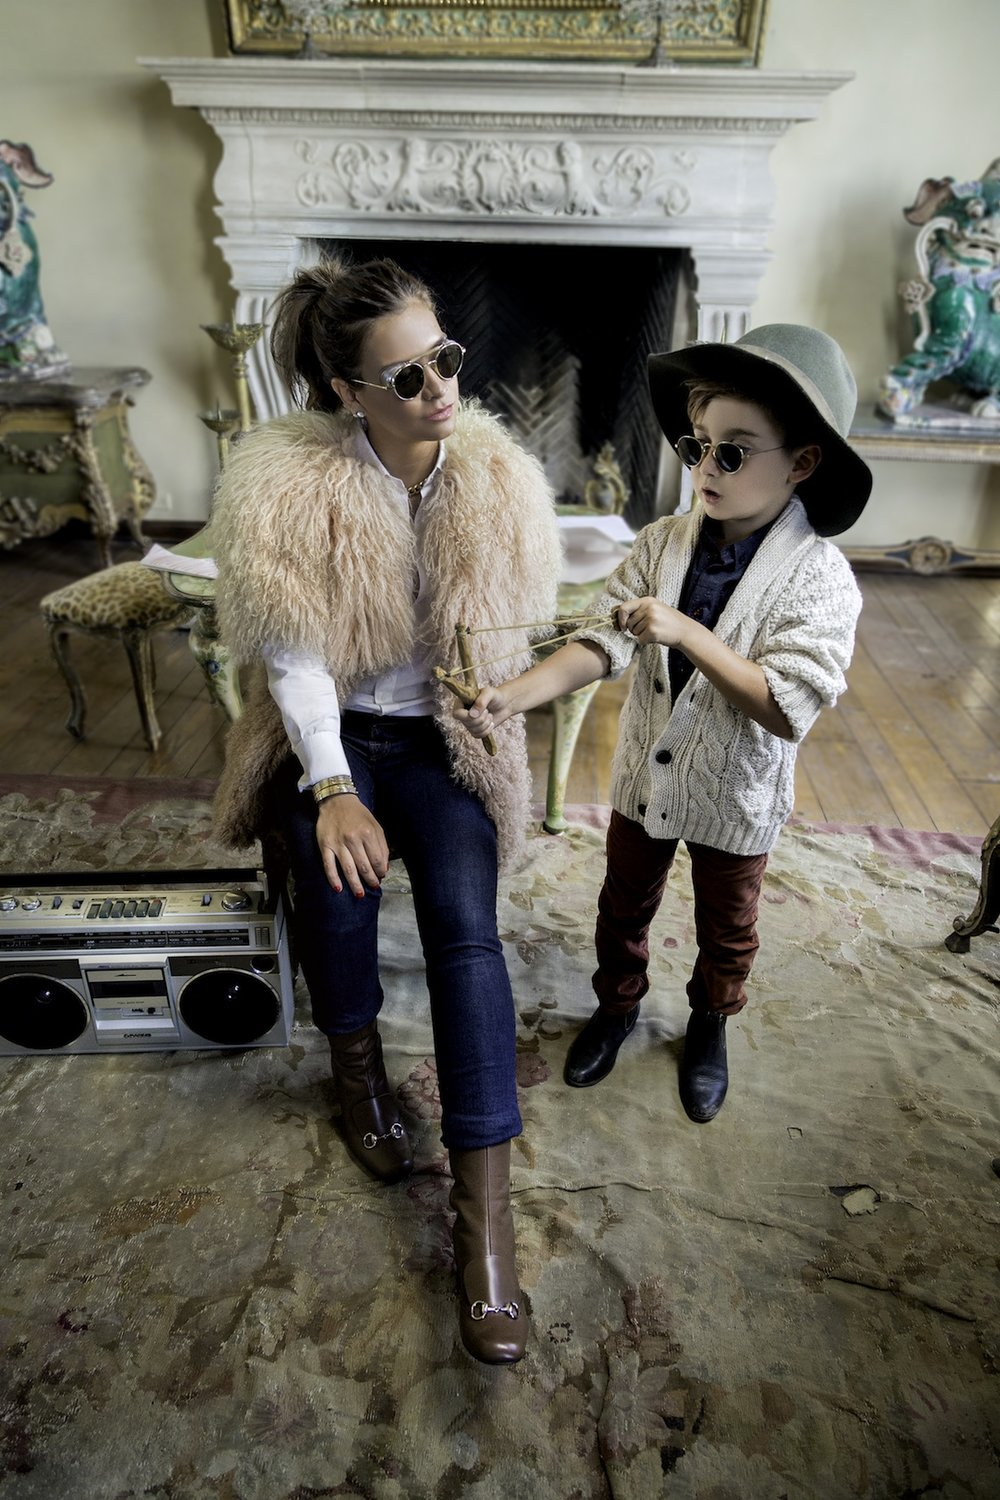 alonso_mateo_kids_fashion_felicidad_de_lucas_photographer_011.jpg